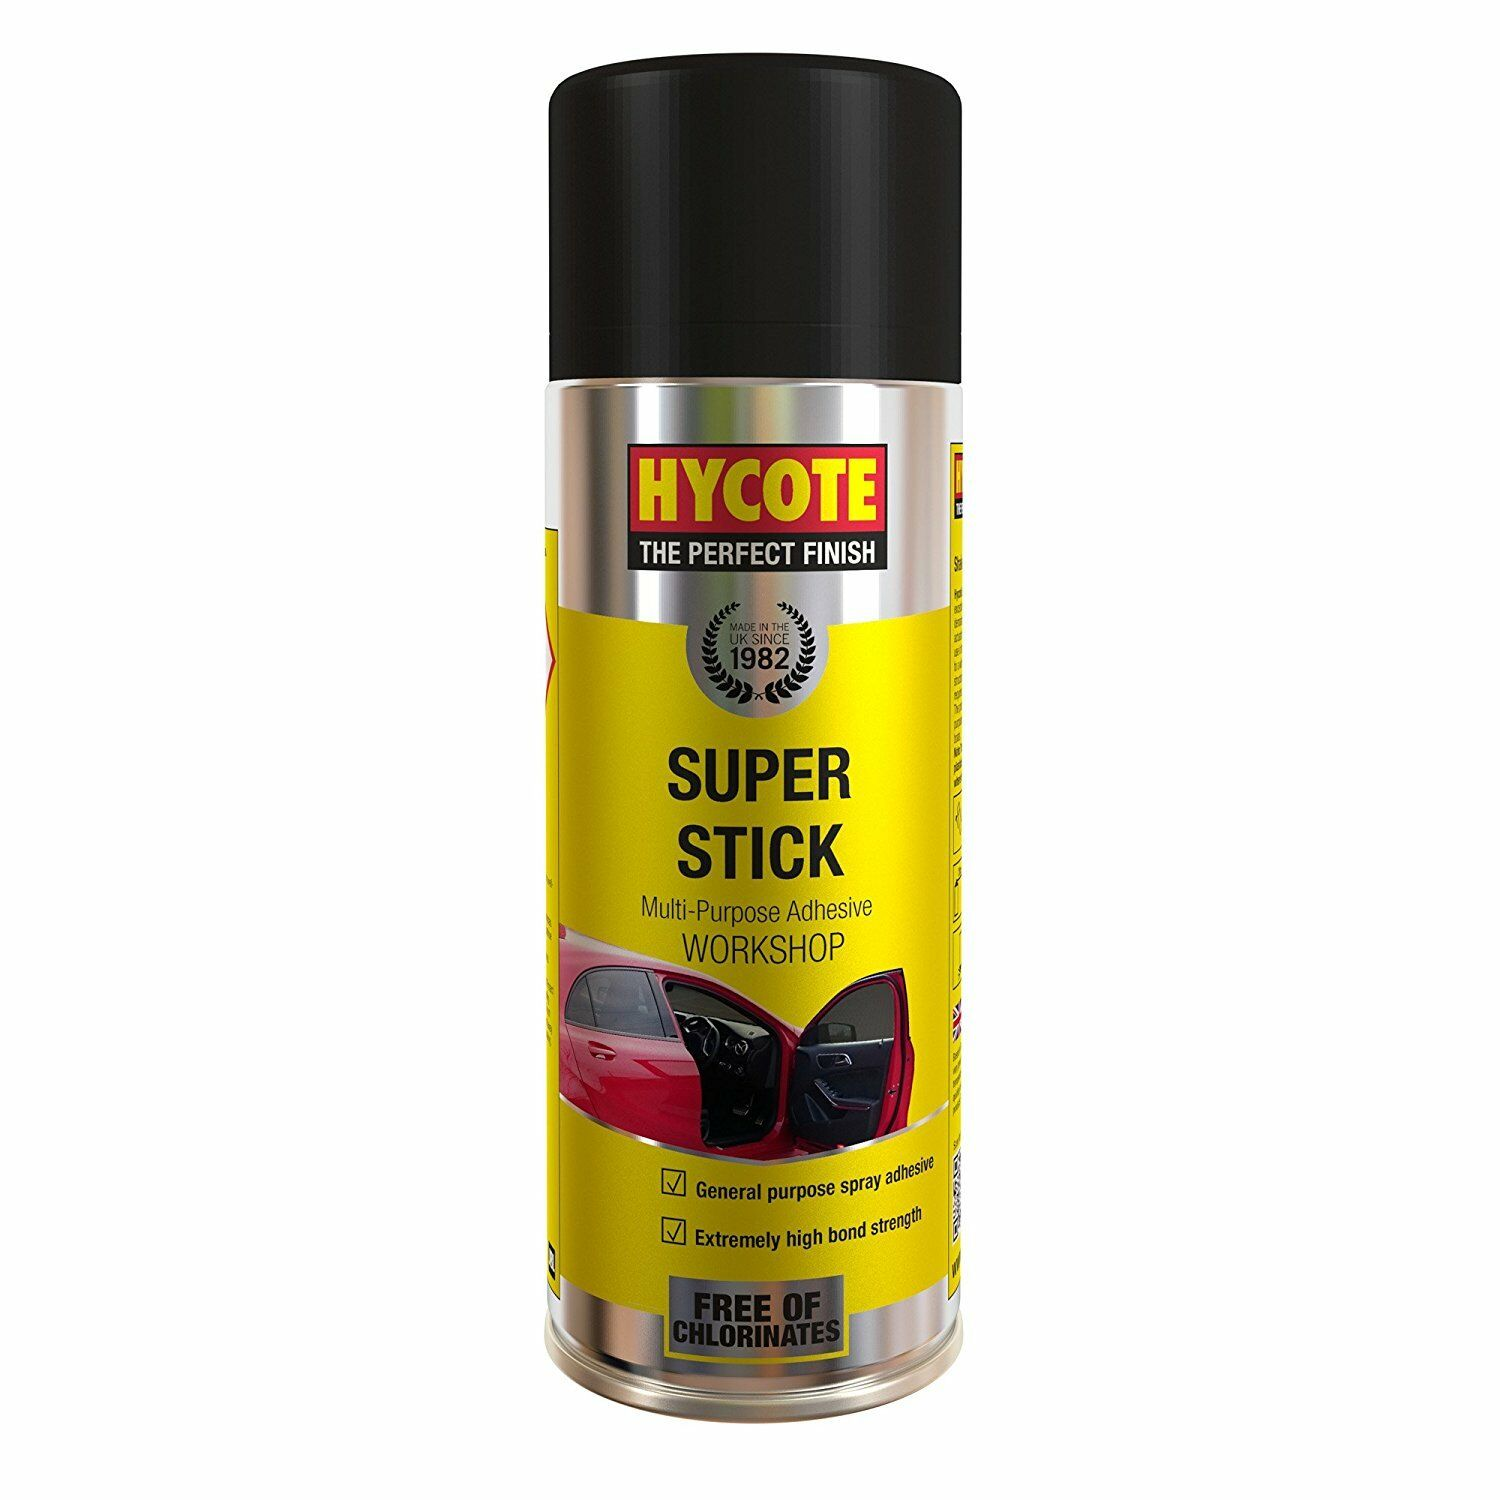 HYCOTE SUPER STICK ADHESIVE SPRAY UNDERLAY CARPET TILE GLUE FLOORING 400ml